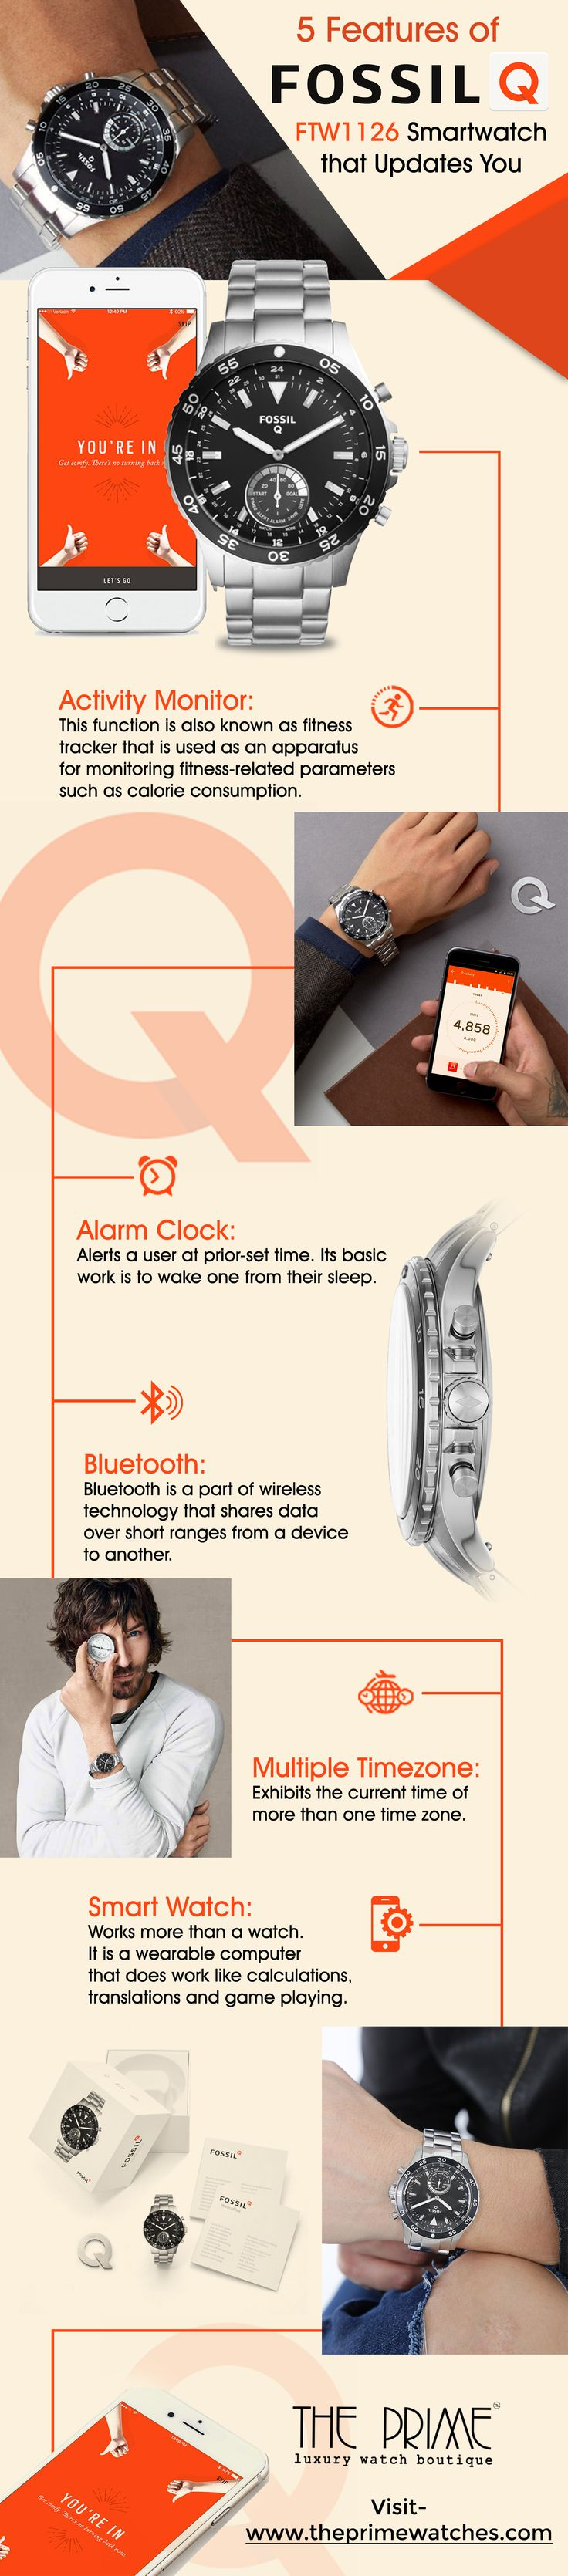 Smartwatches are in vogue in this new millennium. Fossil is one of the leading watch brands that make these kinds of watches with super brilliance. The Fossil Q FTW1126 watch has functions like activity monitor, alarm clock, Bluetooth, multiple time-zones and smart watch that enables it to work like a wearable computer.